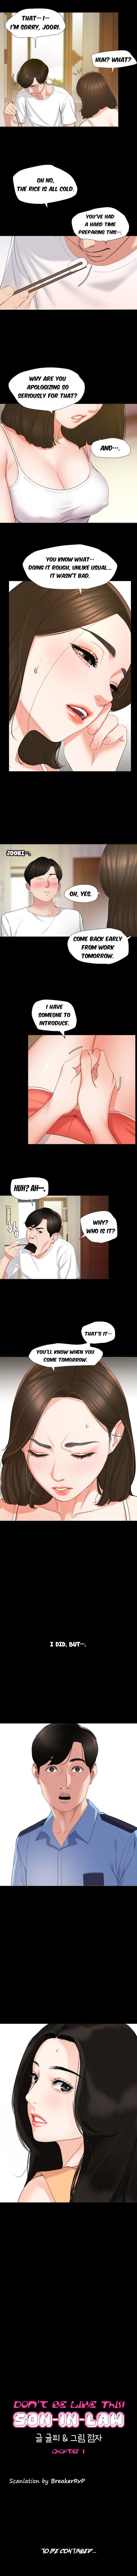 Don't Be Like This! Son-In-Law 1 [English] 7